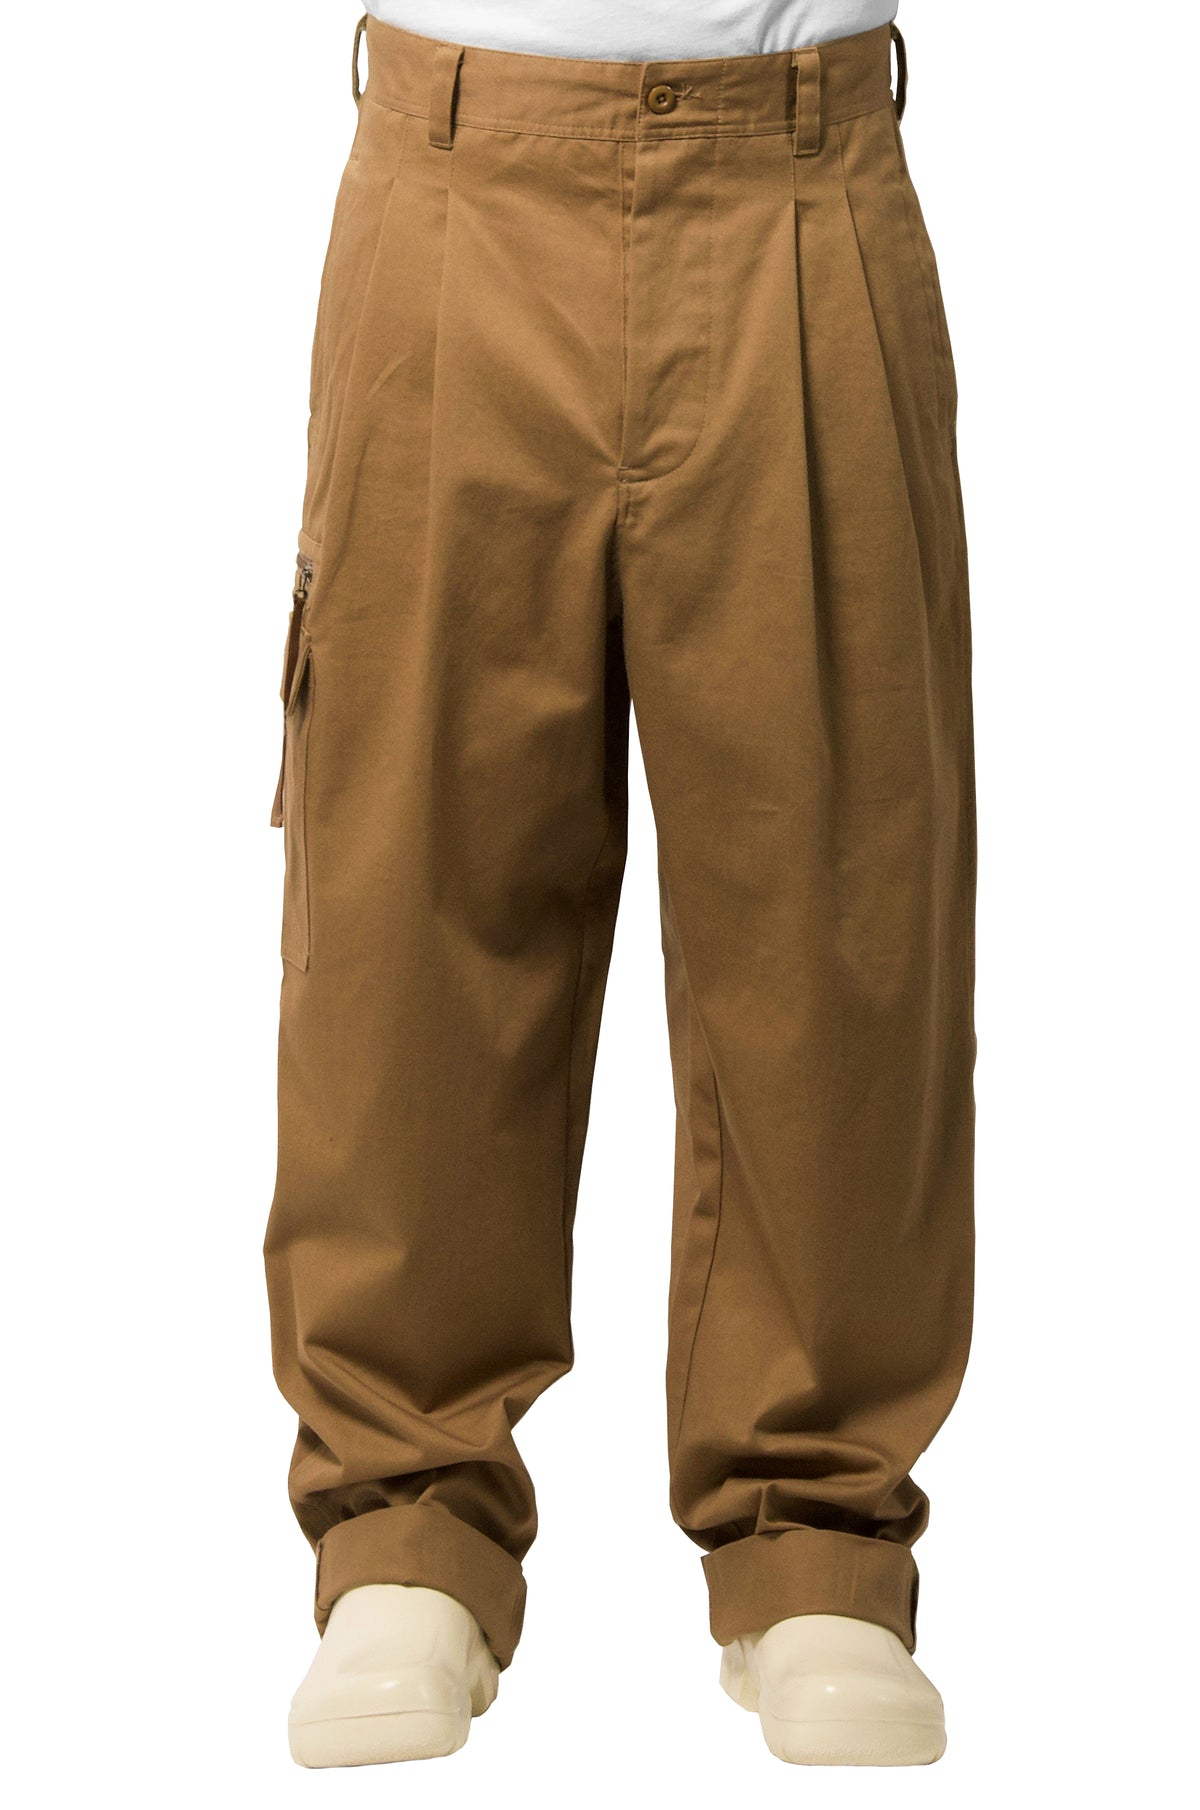 "032c WWB ""Chevignon by 032c"" Hunting Pants Beige - 032c"